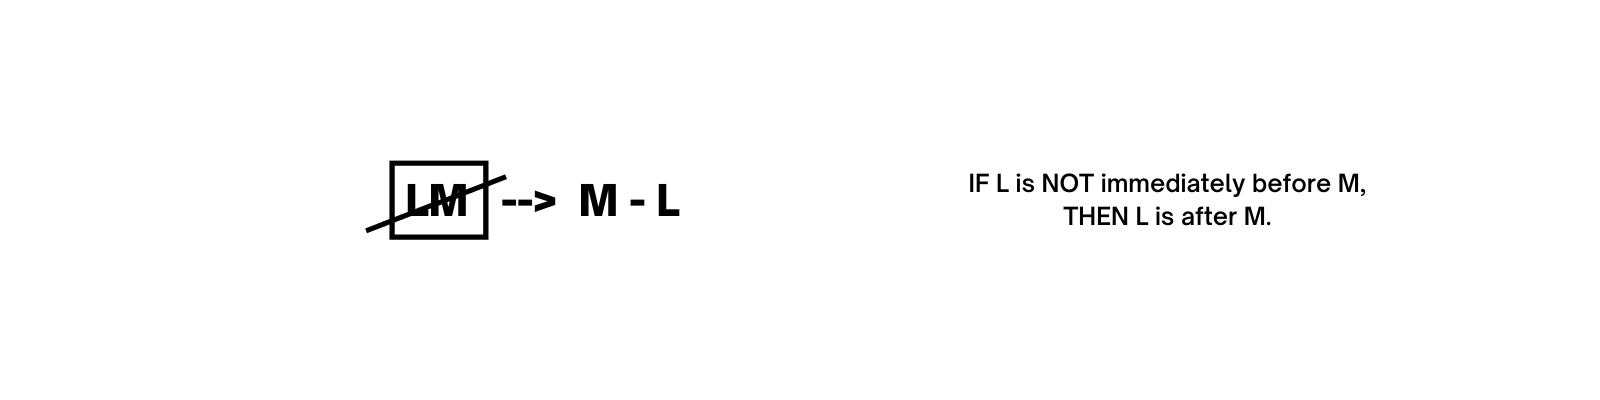 If not LM then L is after M.